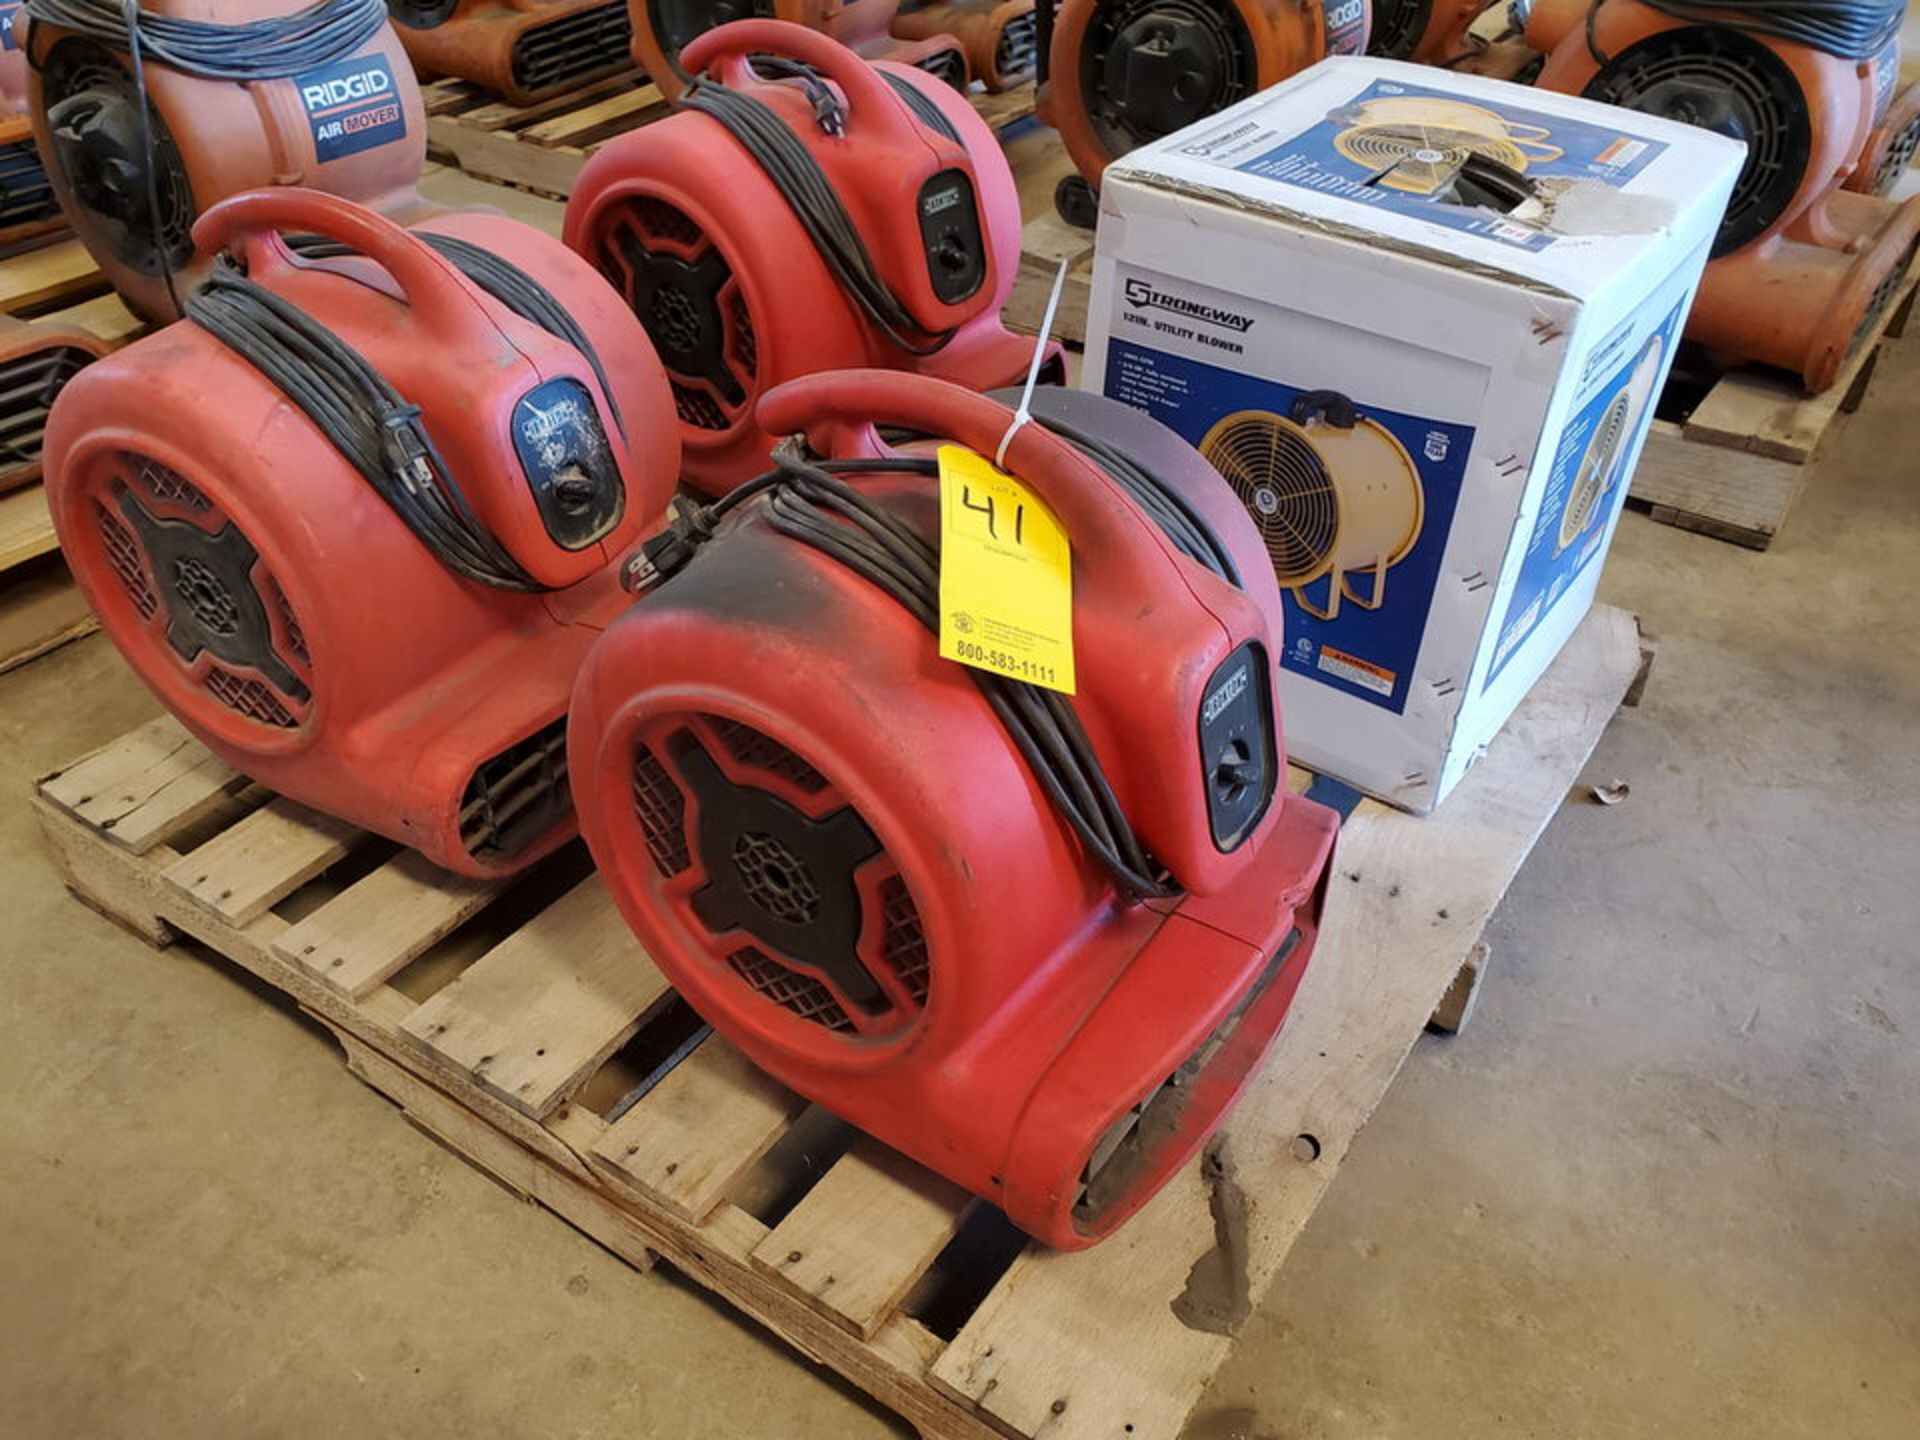 Strongway & Ironton (4) Air Blowers (3) 115V, 1HP, 8.5A; (1) 120V, 3.8A, 430W, 1300RPM - Image 2 of 5